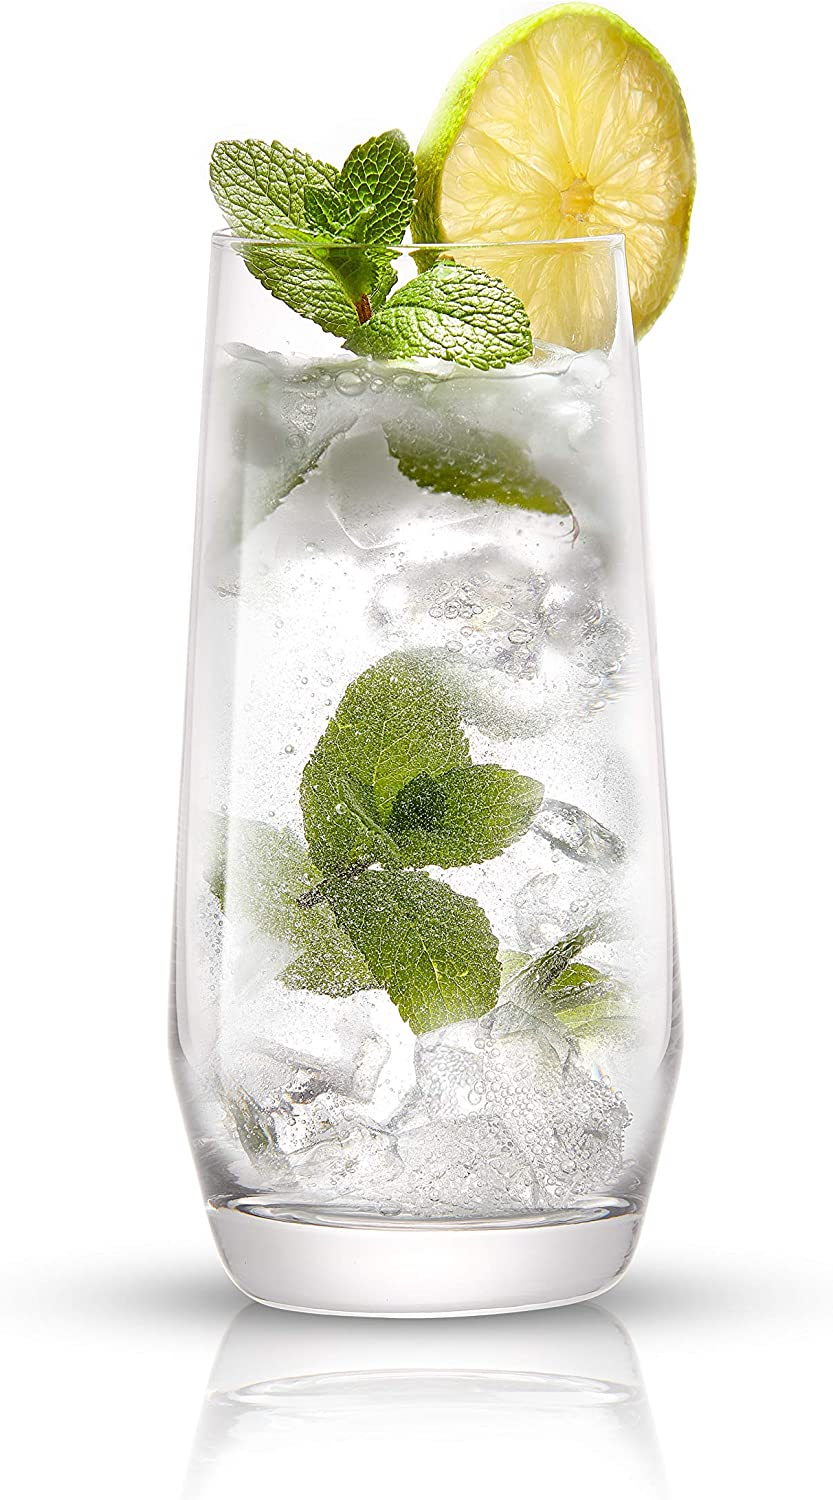 18oz Cocktail Glass Set Lead-Free Crystal Glassware Mojito and Tom Collins Glasses JoyJolt Gwen Highball Glasses Set of 4 Tall Drinking Glasses Bourbon or Whiskey Glass Cup Water Iced Tea Bar